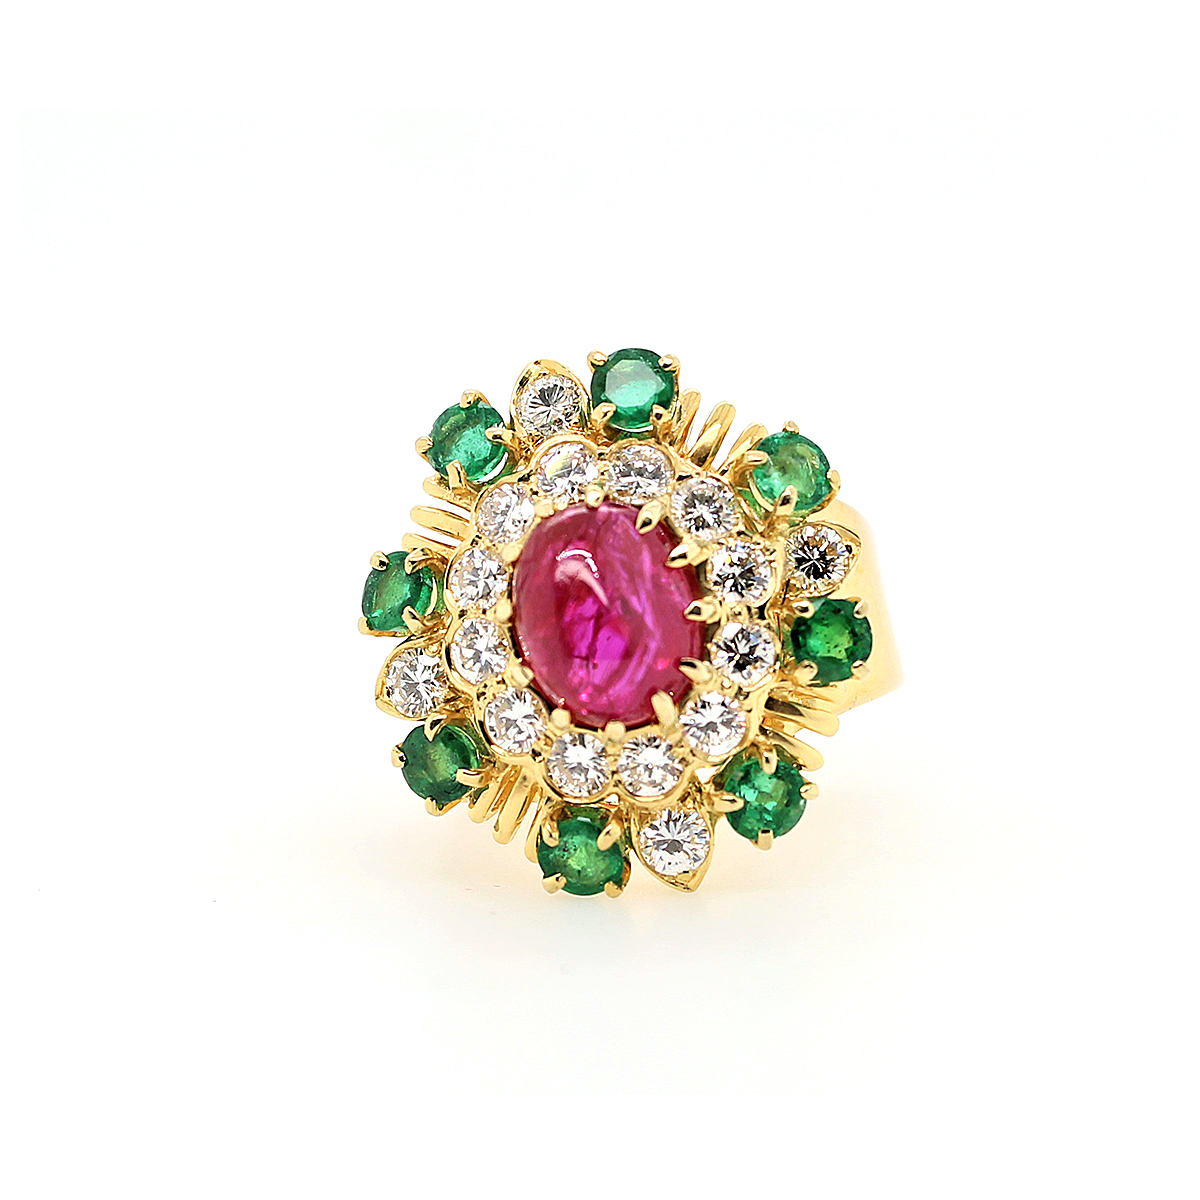 Vintage 18 Karat Yellow Gold Ruby, Emerald and Diamond Ring